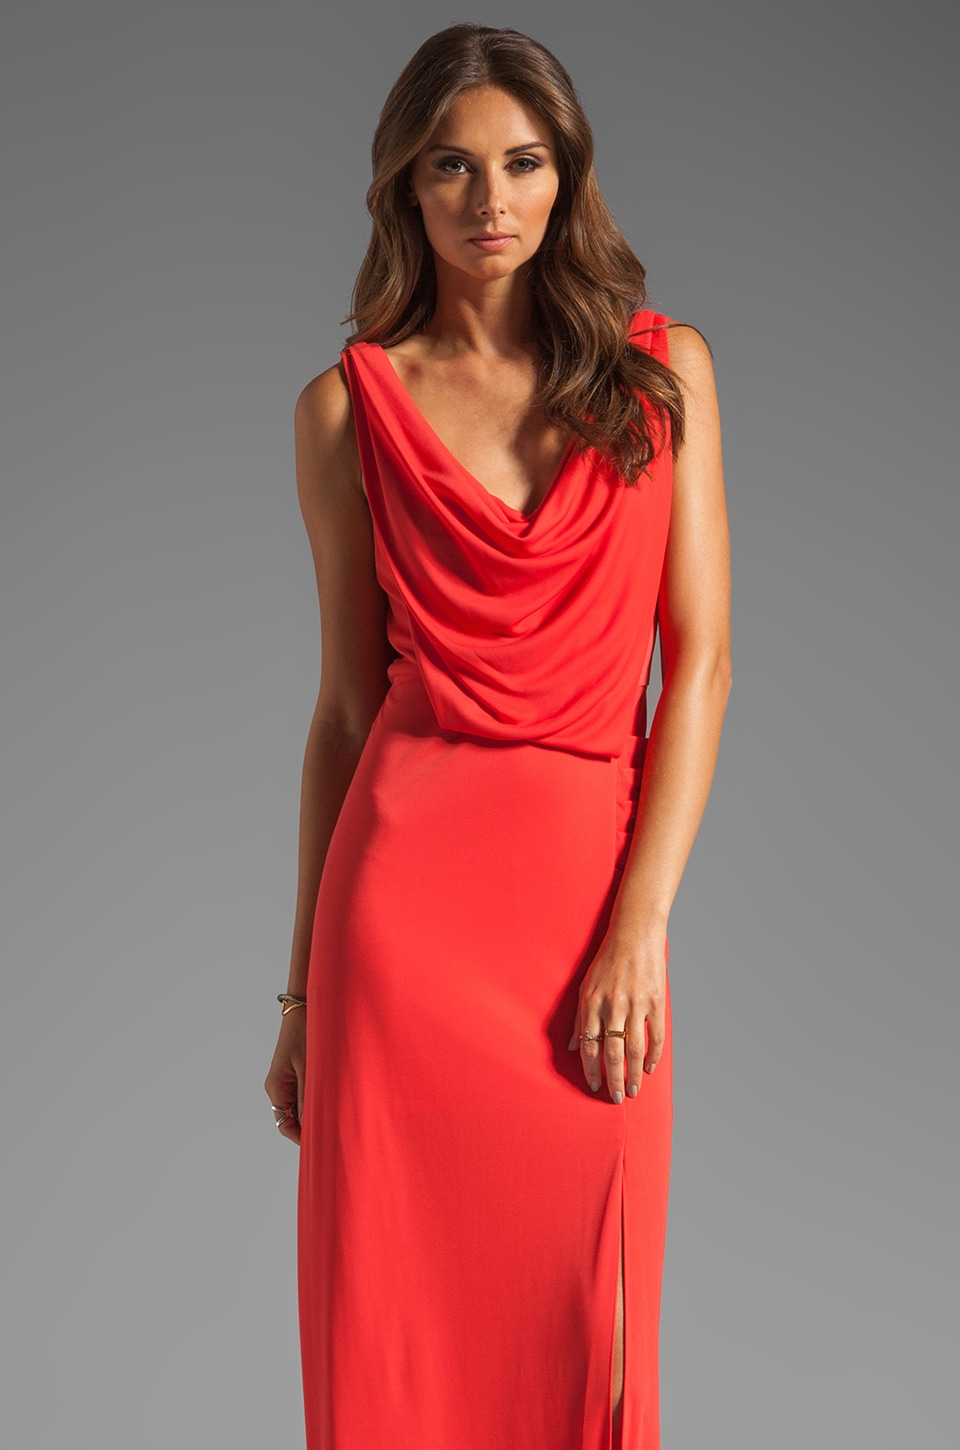 BCBGMAXAZRIA Cowl Neck Maxi Dress in Bright Poppy